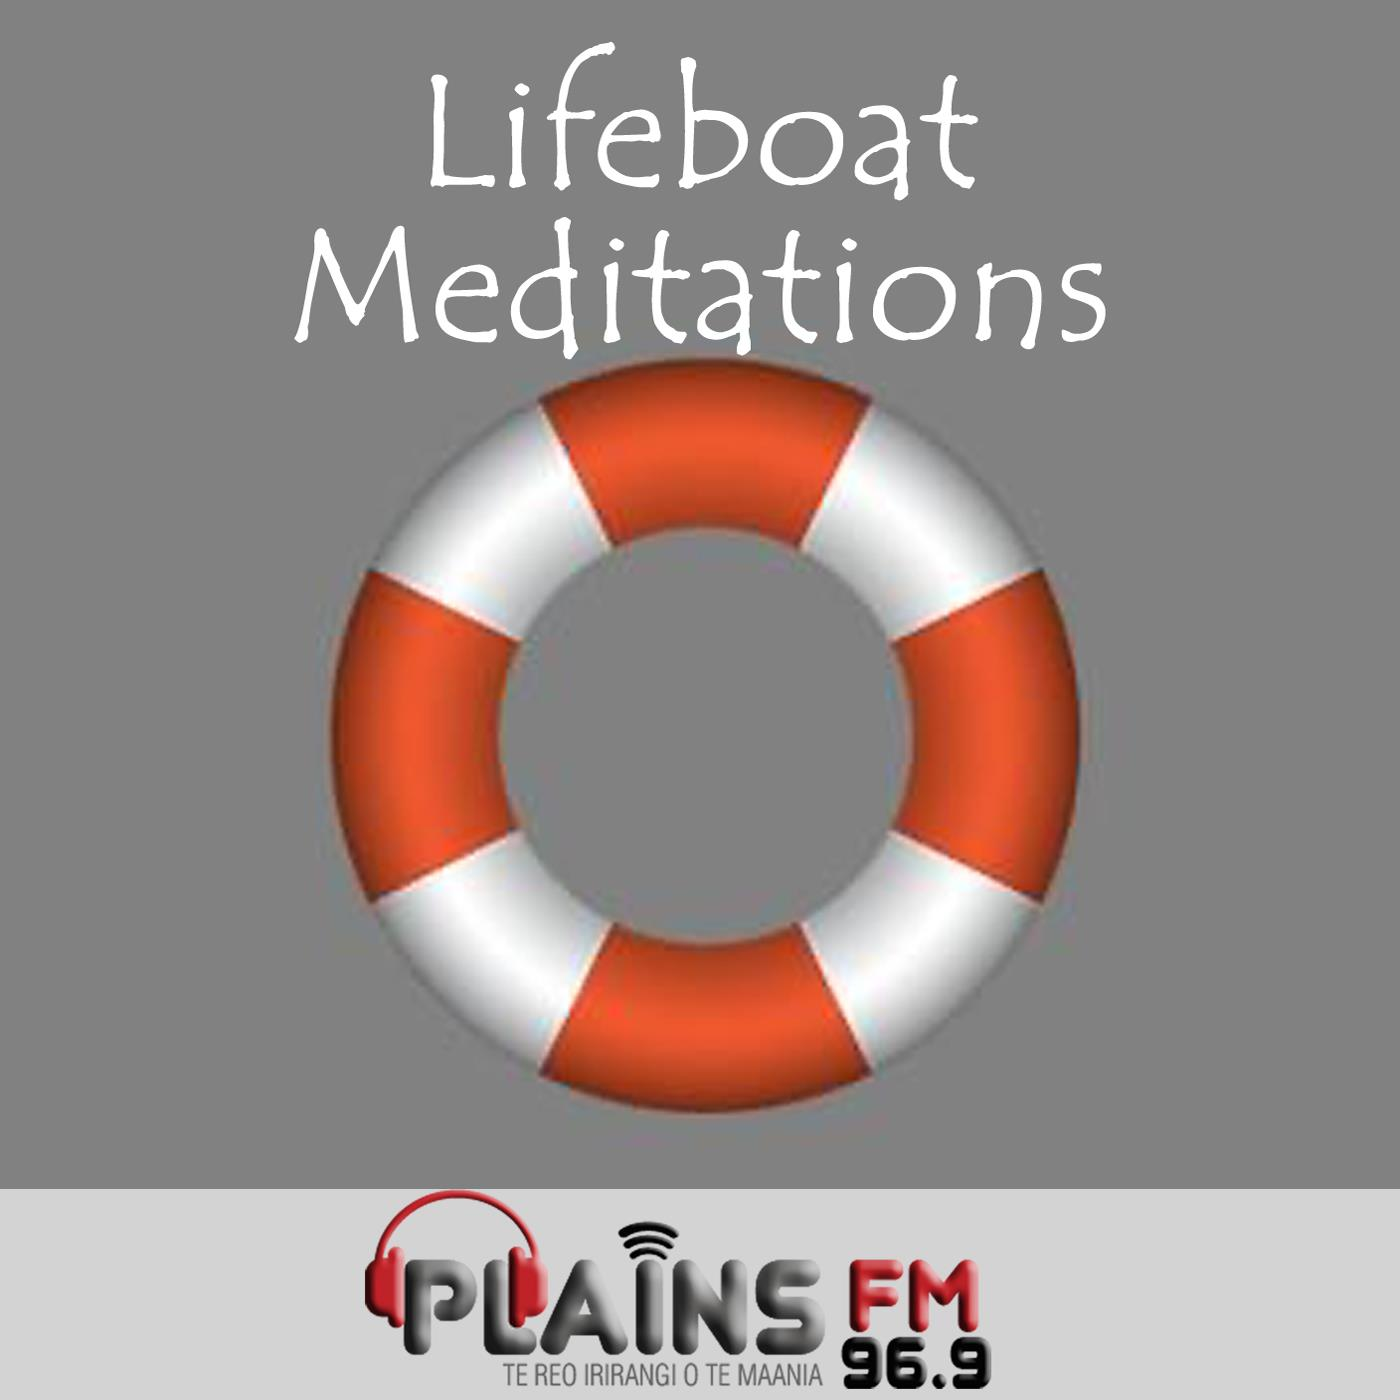 Lifeboat Meditations - Mindfulness and Trauma